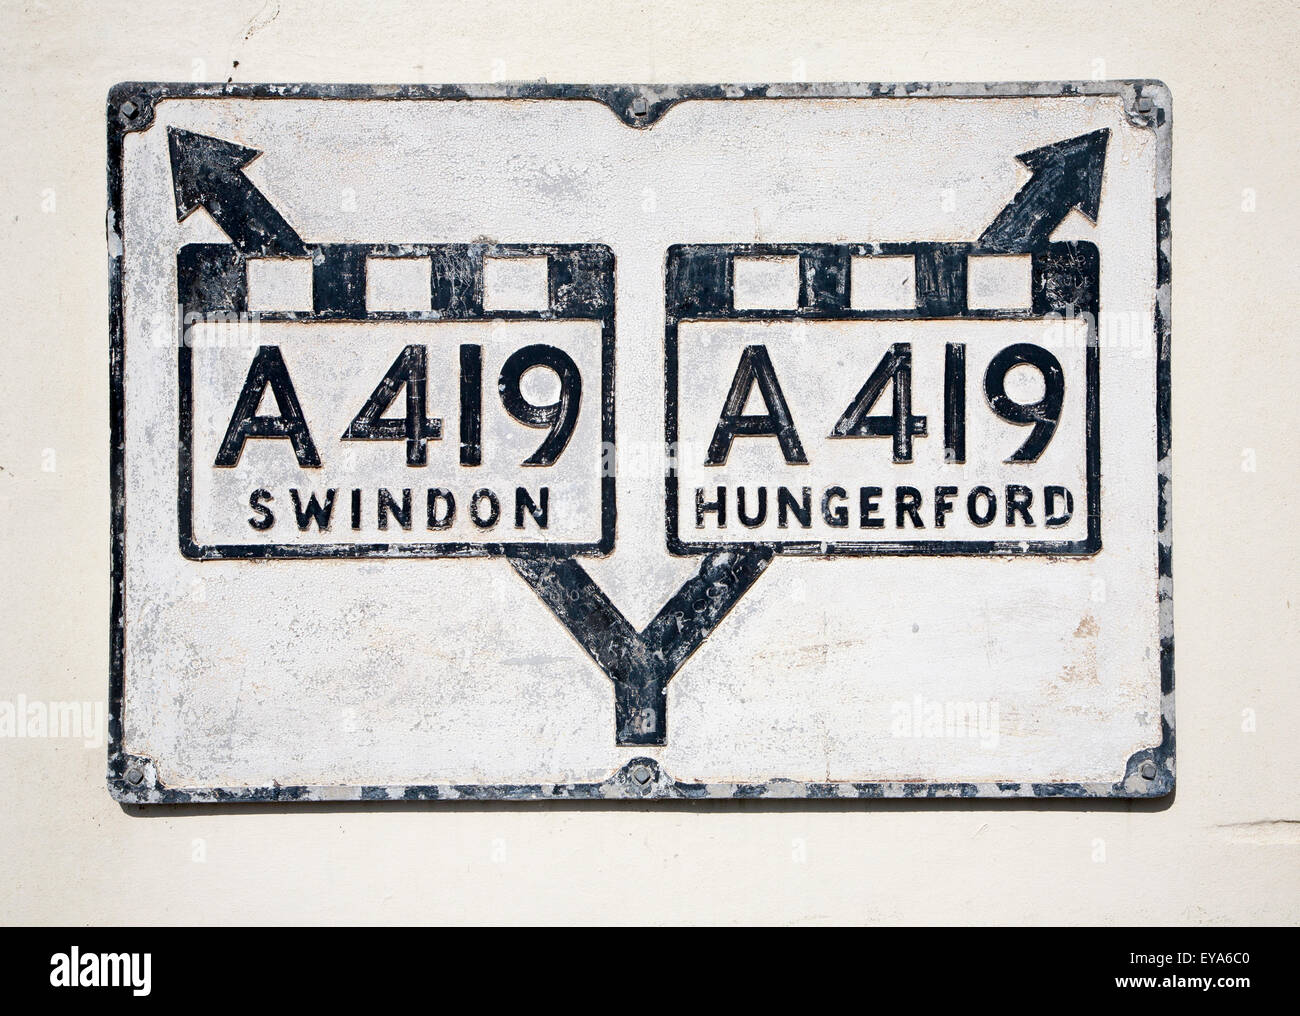 Old sign for A419 trunk road, Ramsbury village, Wiltshire, England, UK - Stock Image